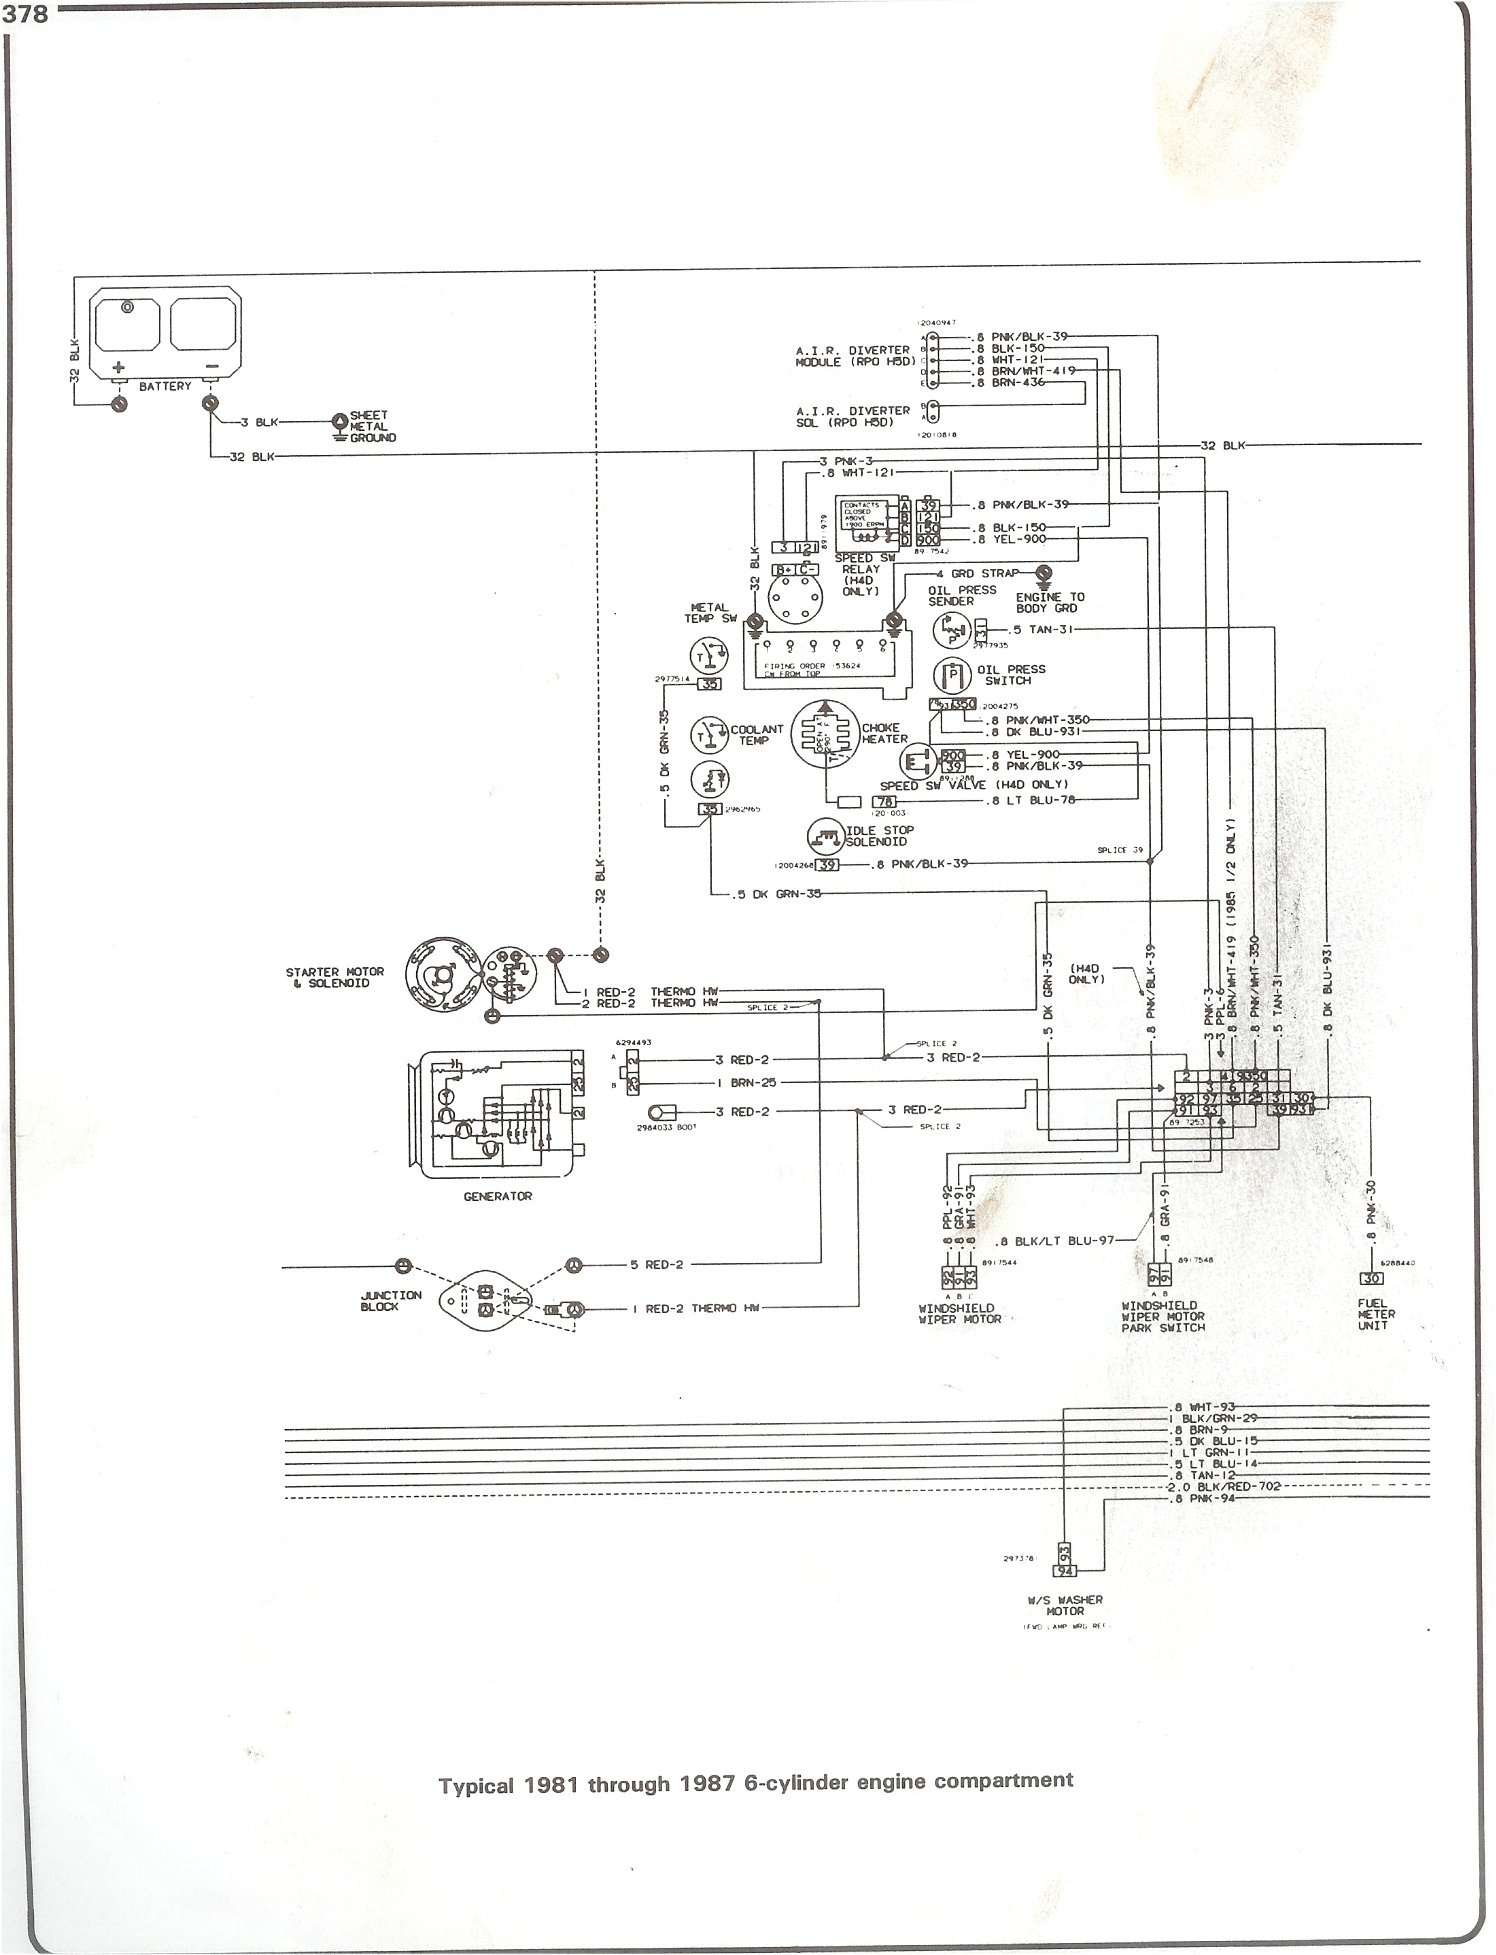 87 Chevy Silverado Wiring Schematic Diagrams Malibu Ignition Diagram Complete 73 2002 81 I6 Engine Compartment